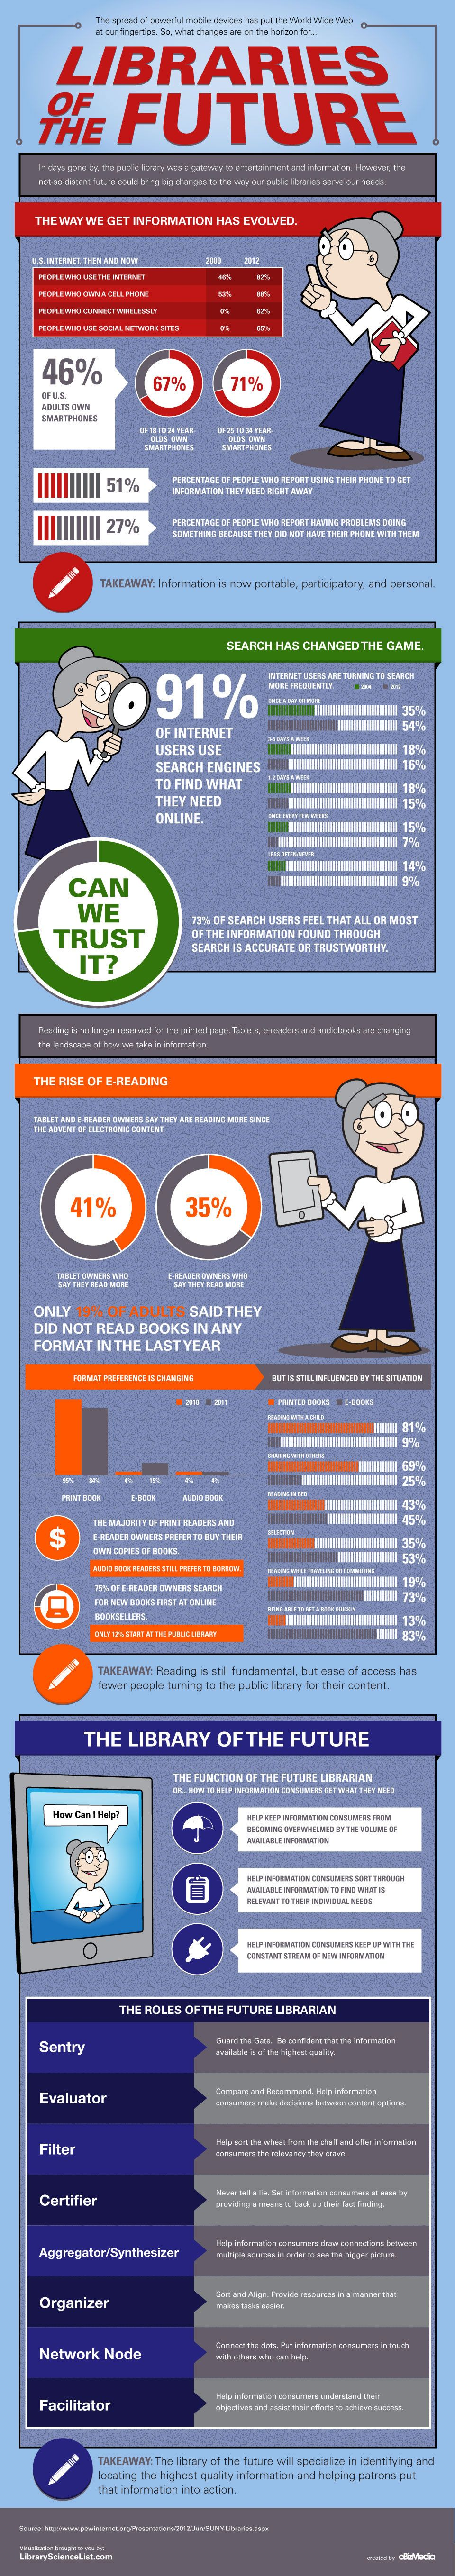 Future Librarian Infographic Library